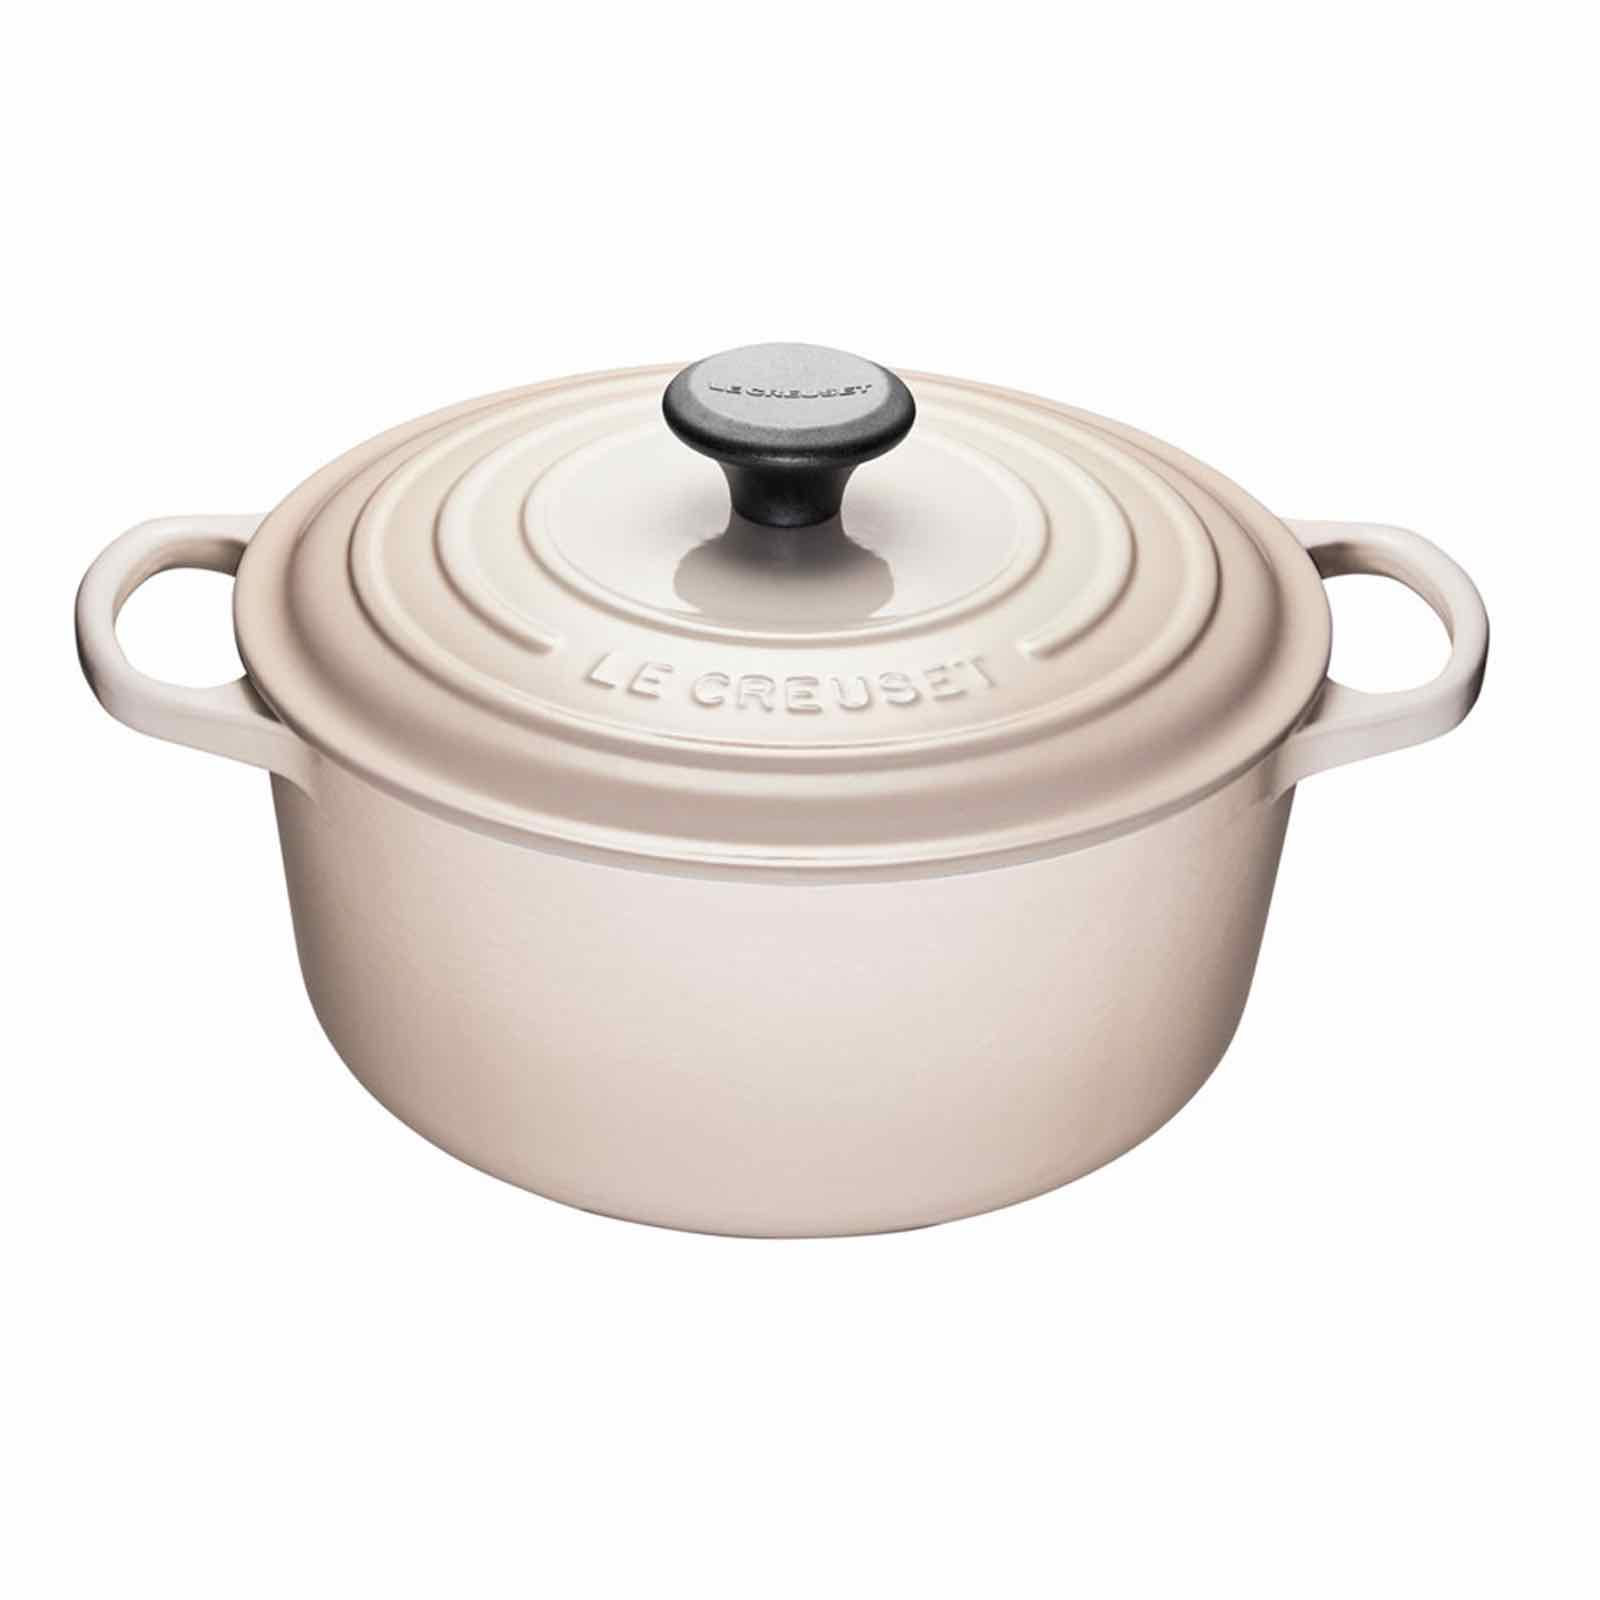 Le Creuset Round French Oven 4.2L | Meringue